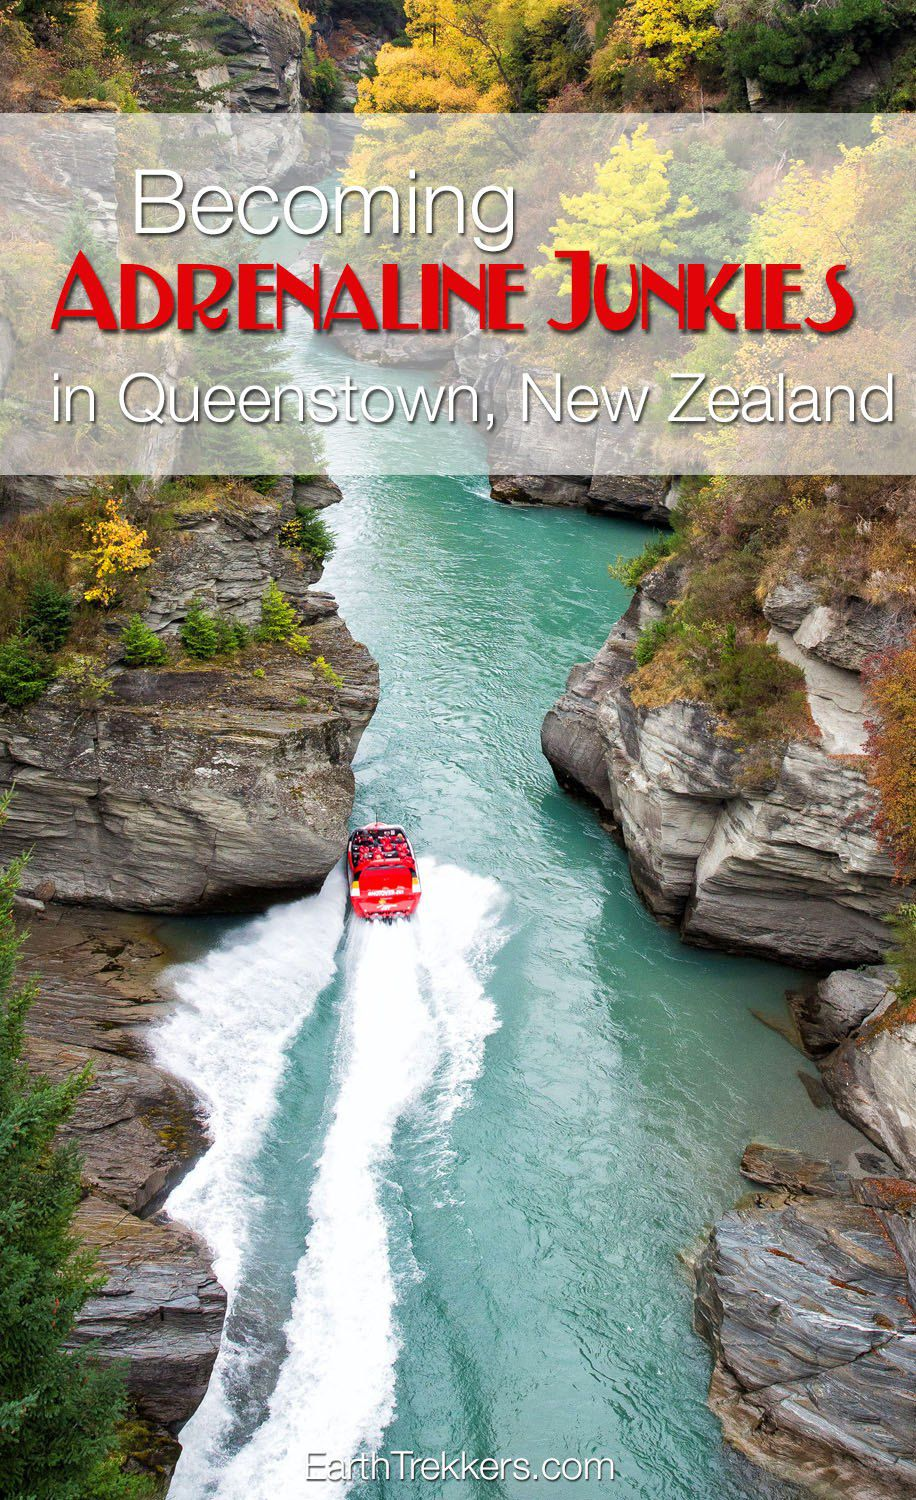 Adrenaline Junkies in New Zealand